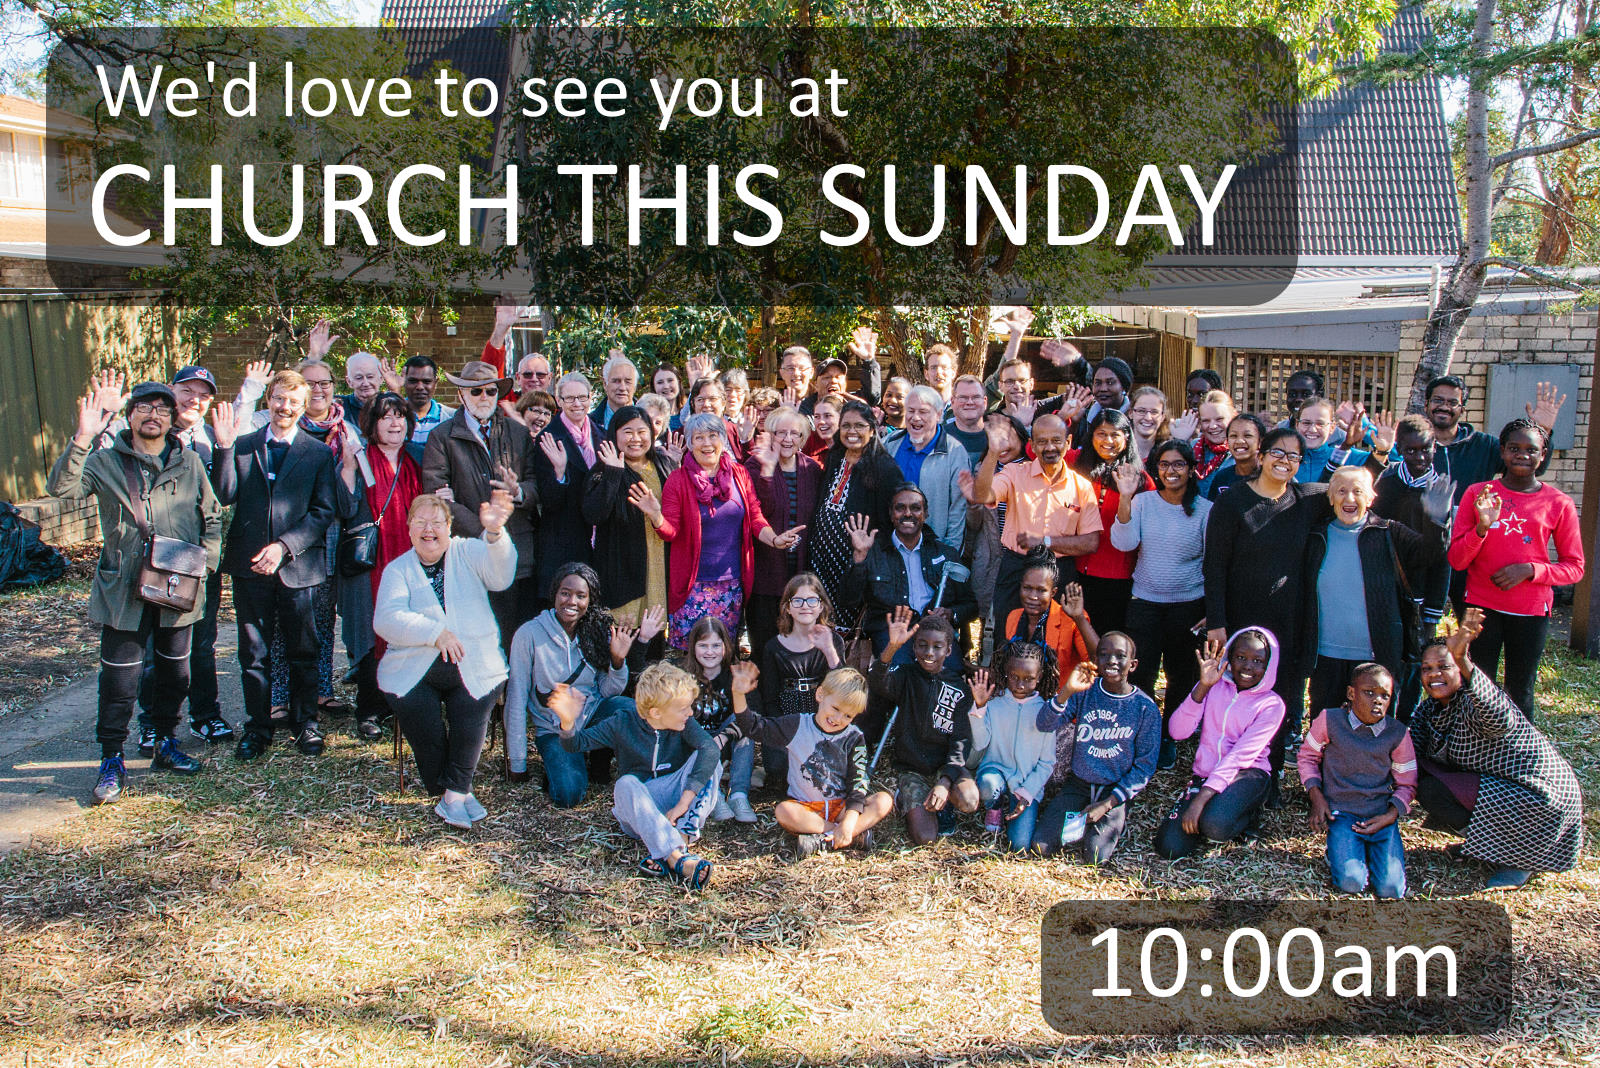 We'd love to see you at church this Sunday. 8am, 10am, 6pm.